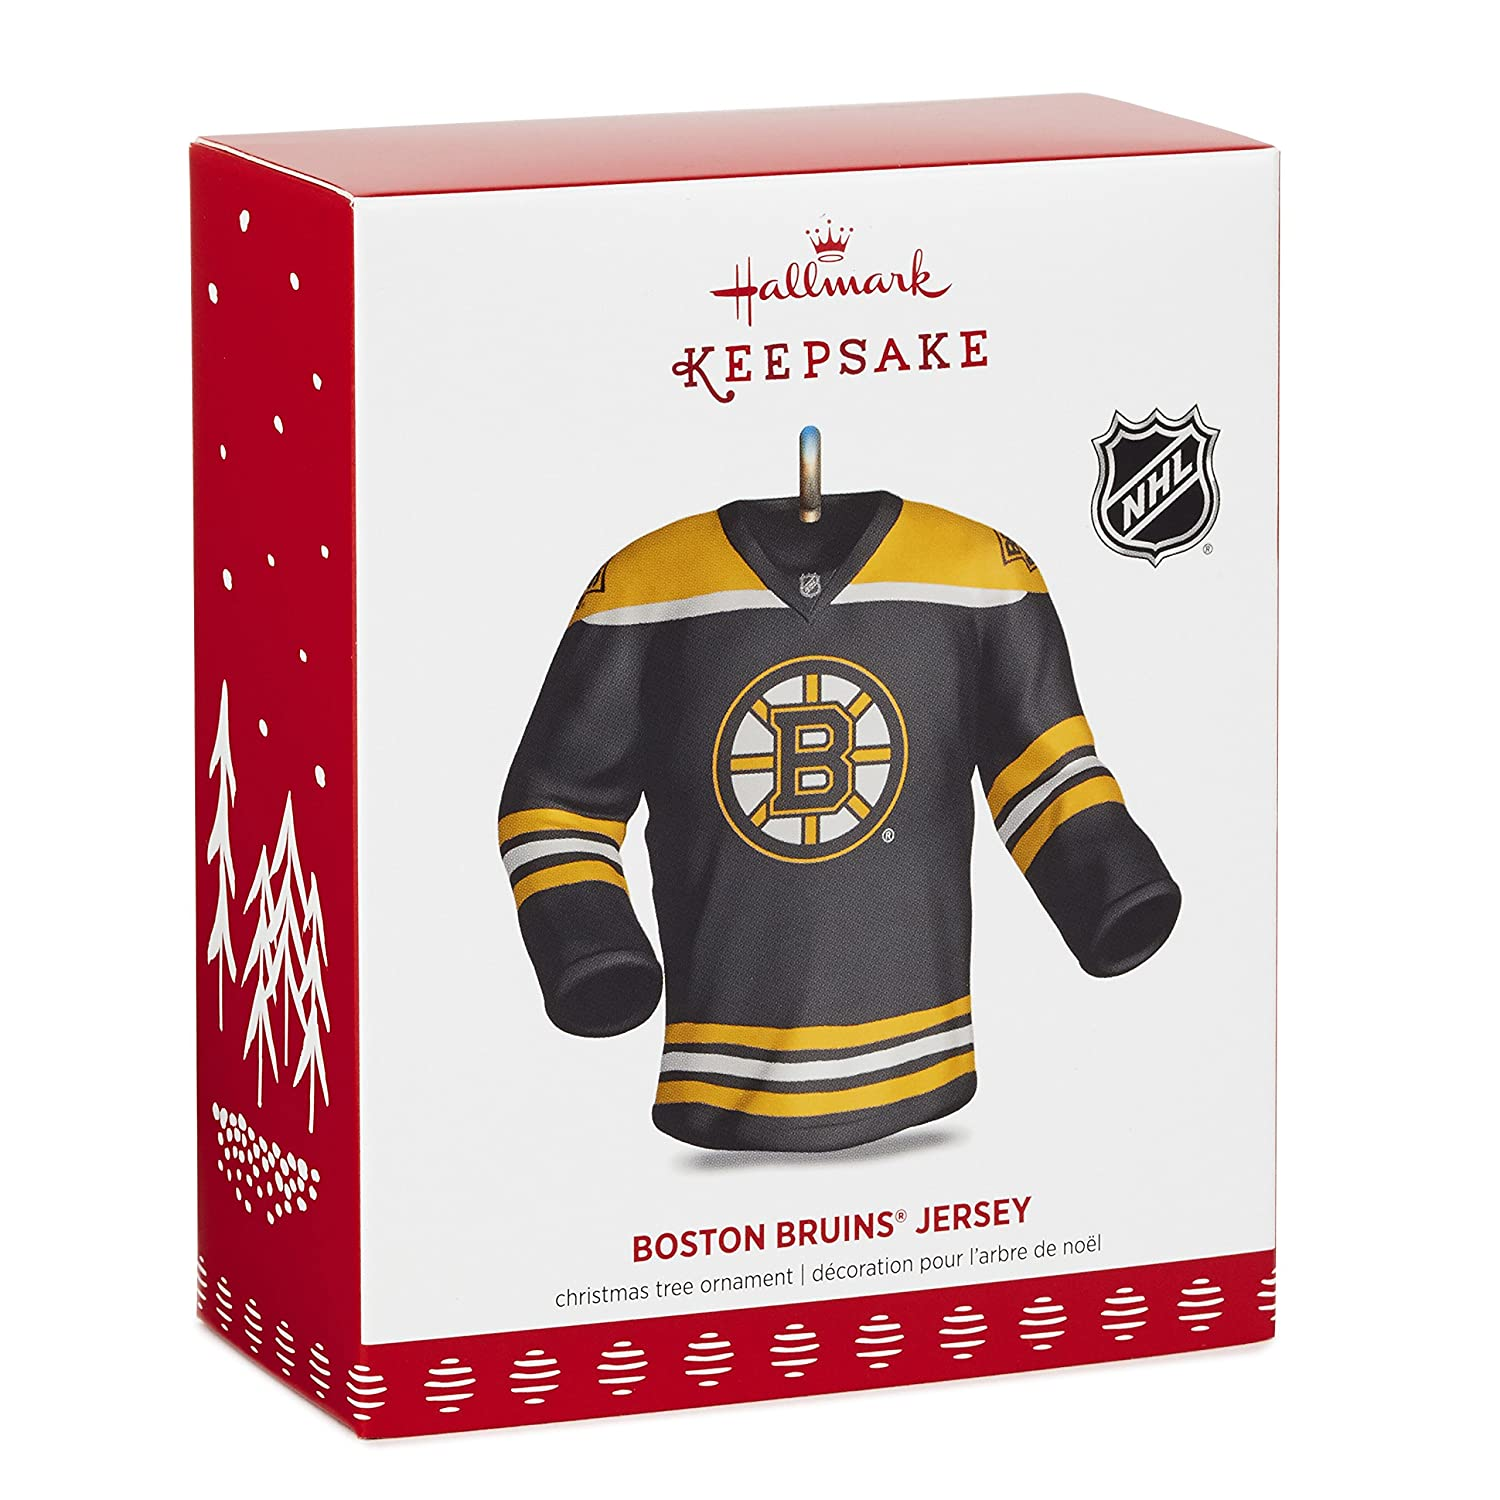 Boston bruins fan giveaways for christmas